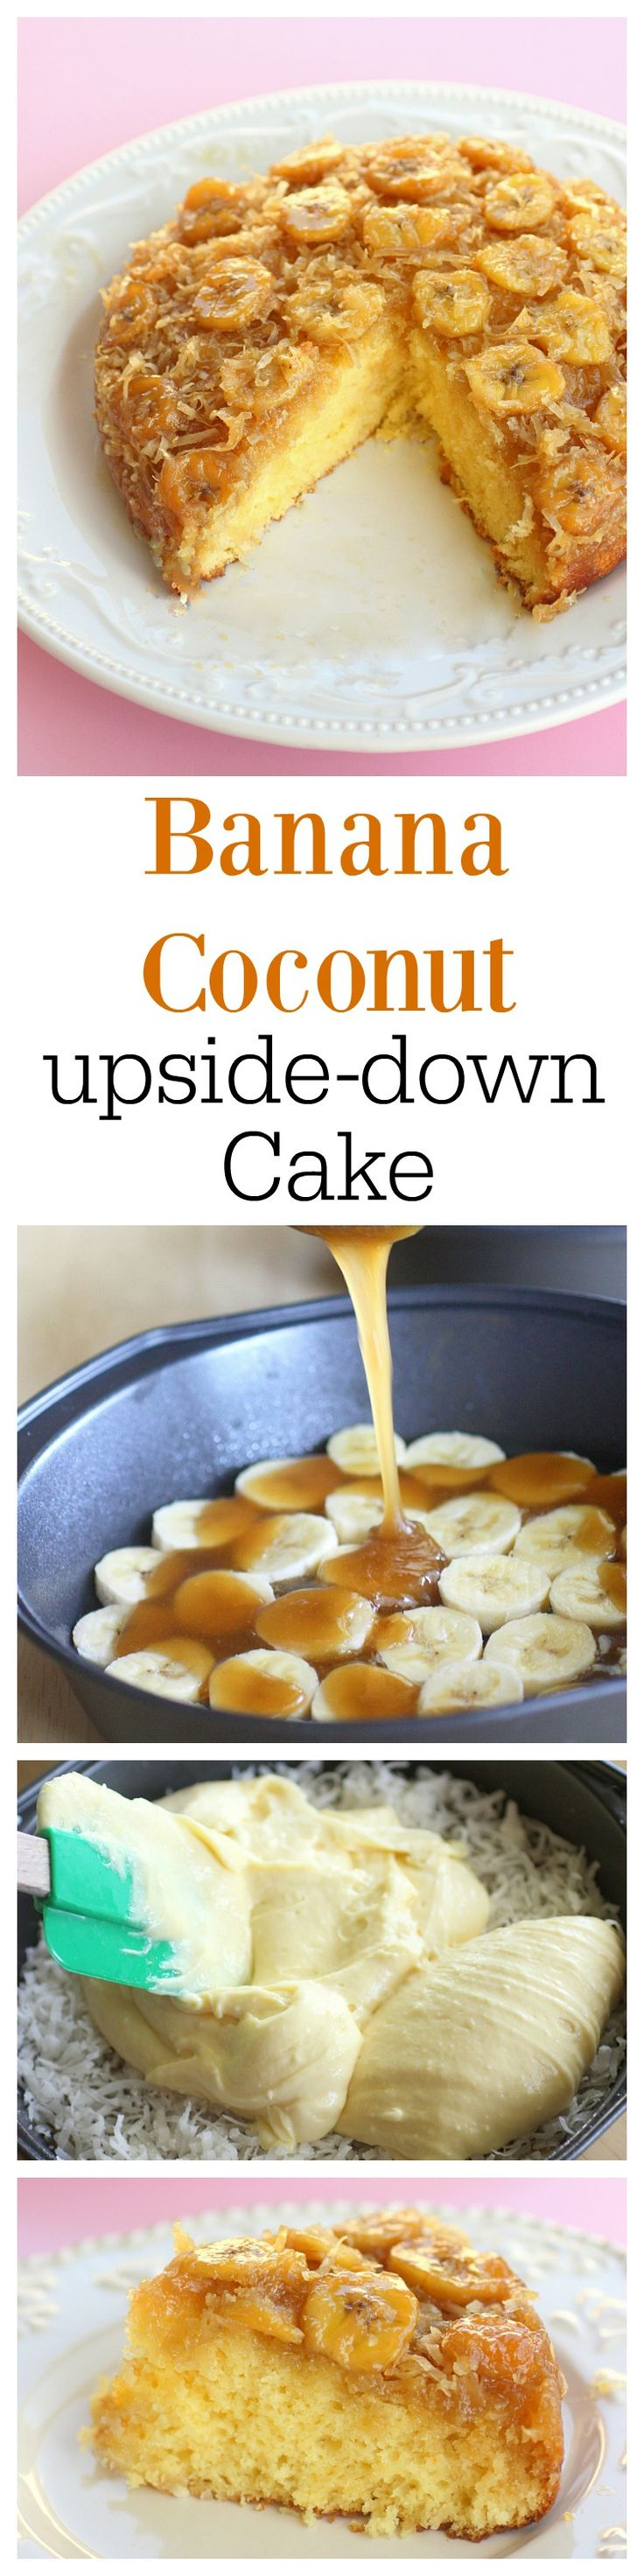 This Banana Coconut Upside Down Cake has a layer of bananas and coconut with a brown sugar sauce infusing every bite. http://the-girl-who-ate-everything.com